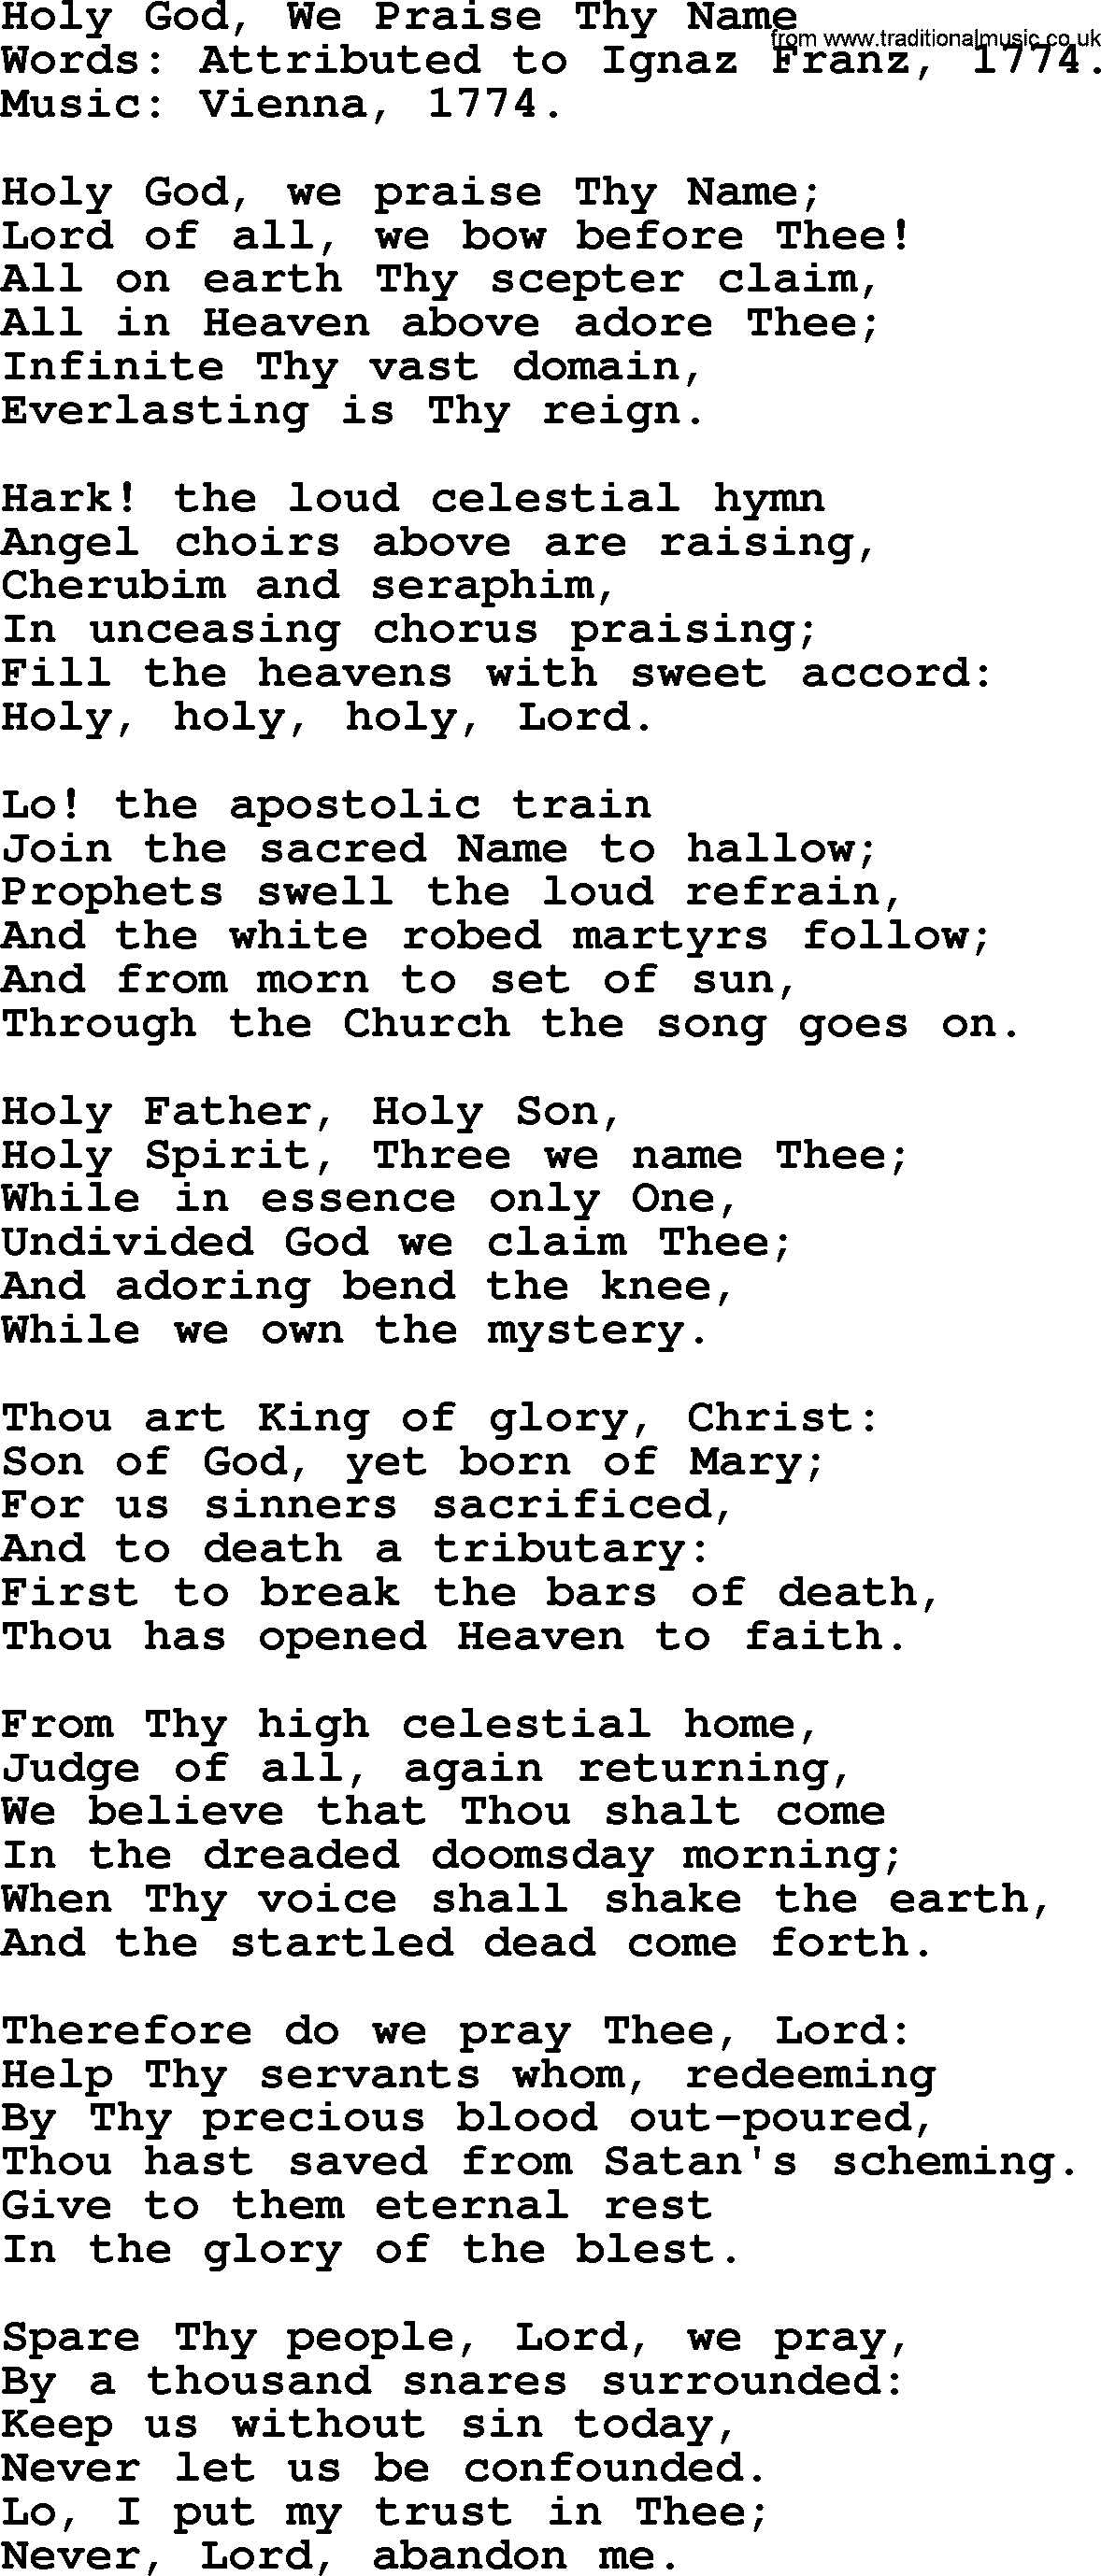 Most Popular Church Hymns and Songs: Holy God, We Praise Thy Name